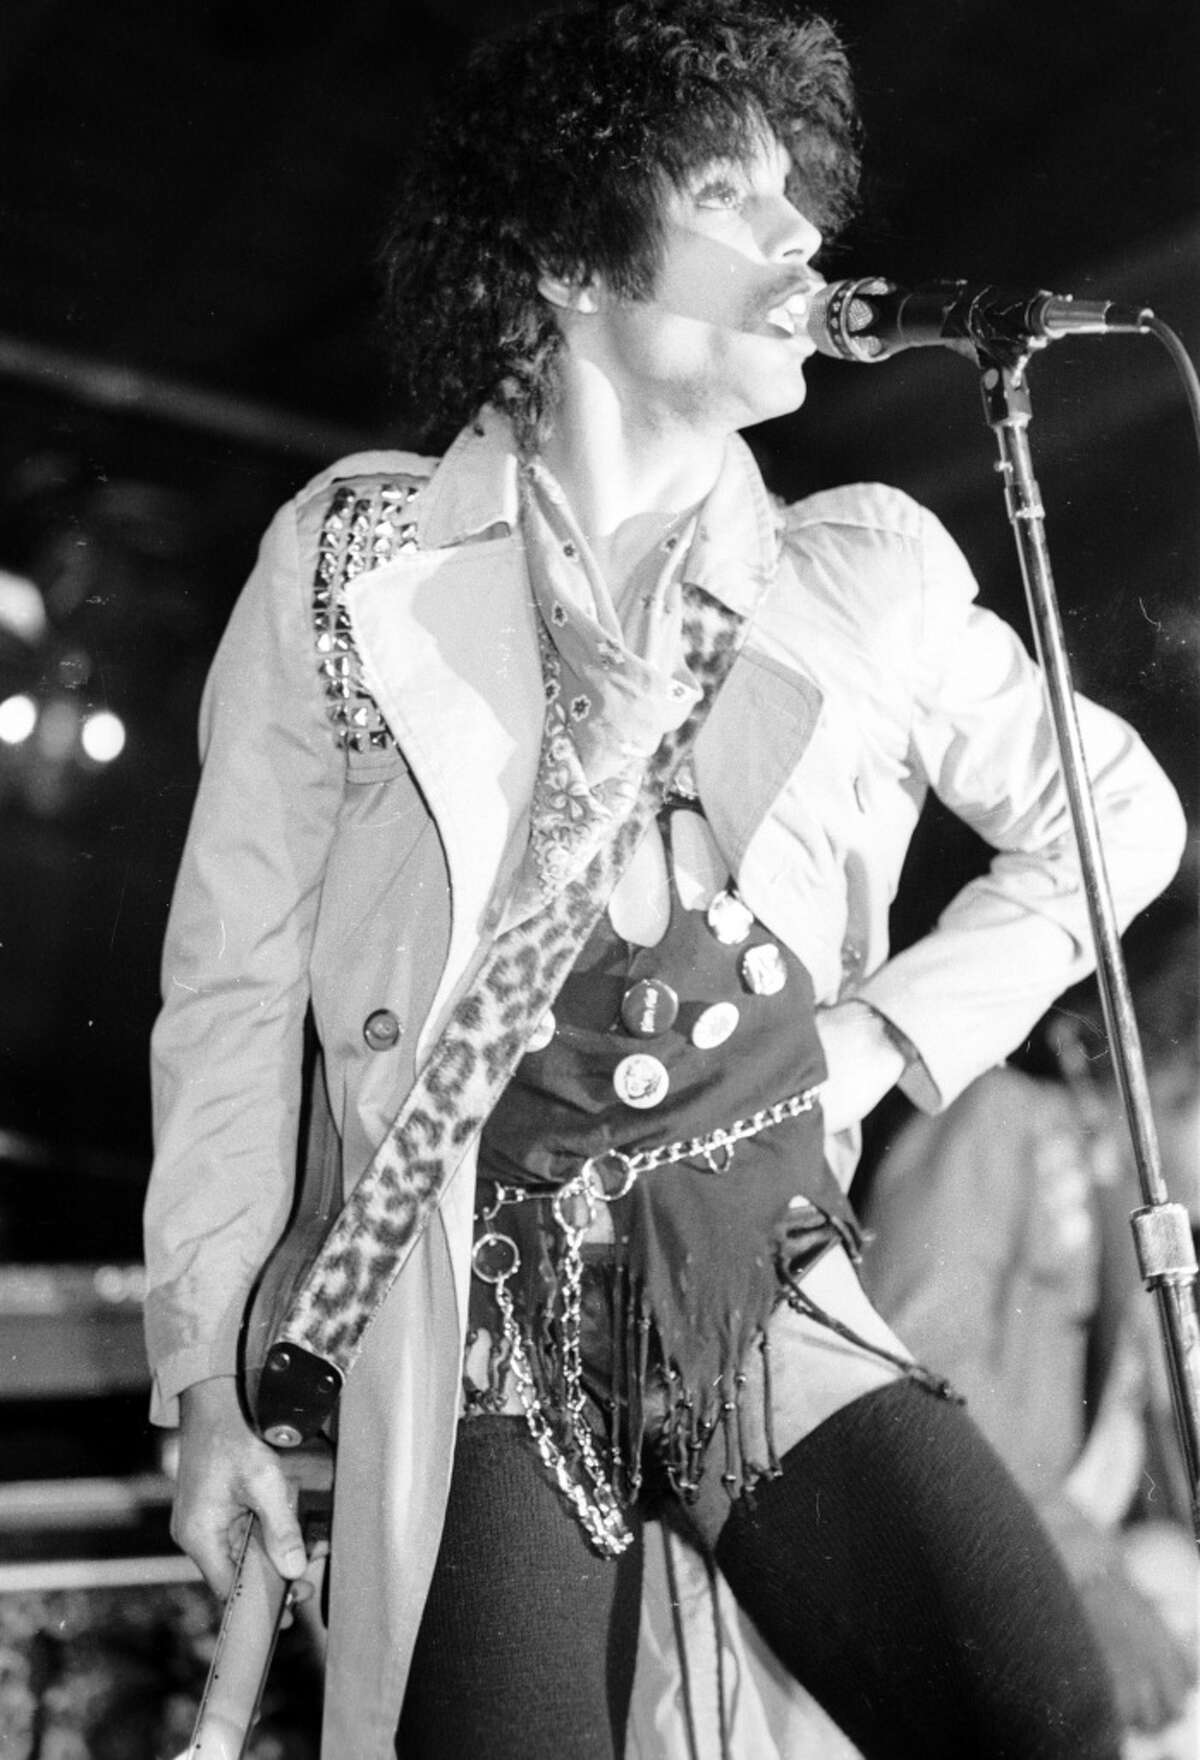 Prince performs on stage at Flipper\'s Roller Disco Boogie Lounge on March 31, 1981 in Los Angeles, California. (Photo by Michael Ochs Archives/Getty Images)